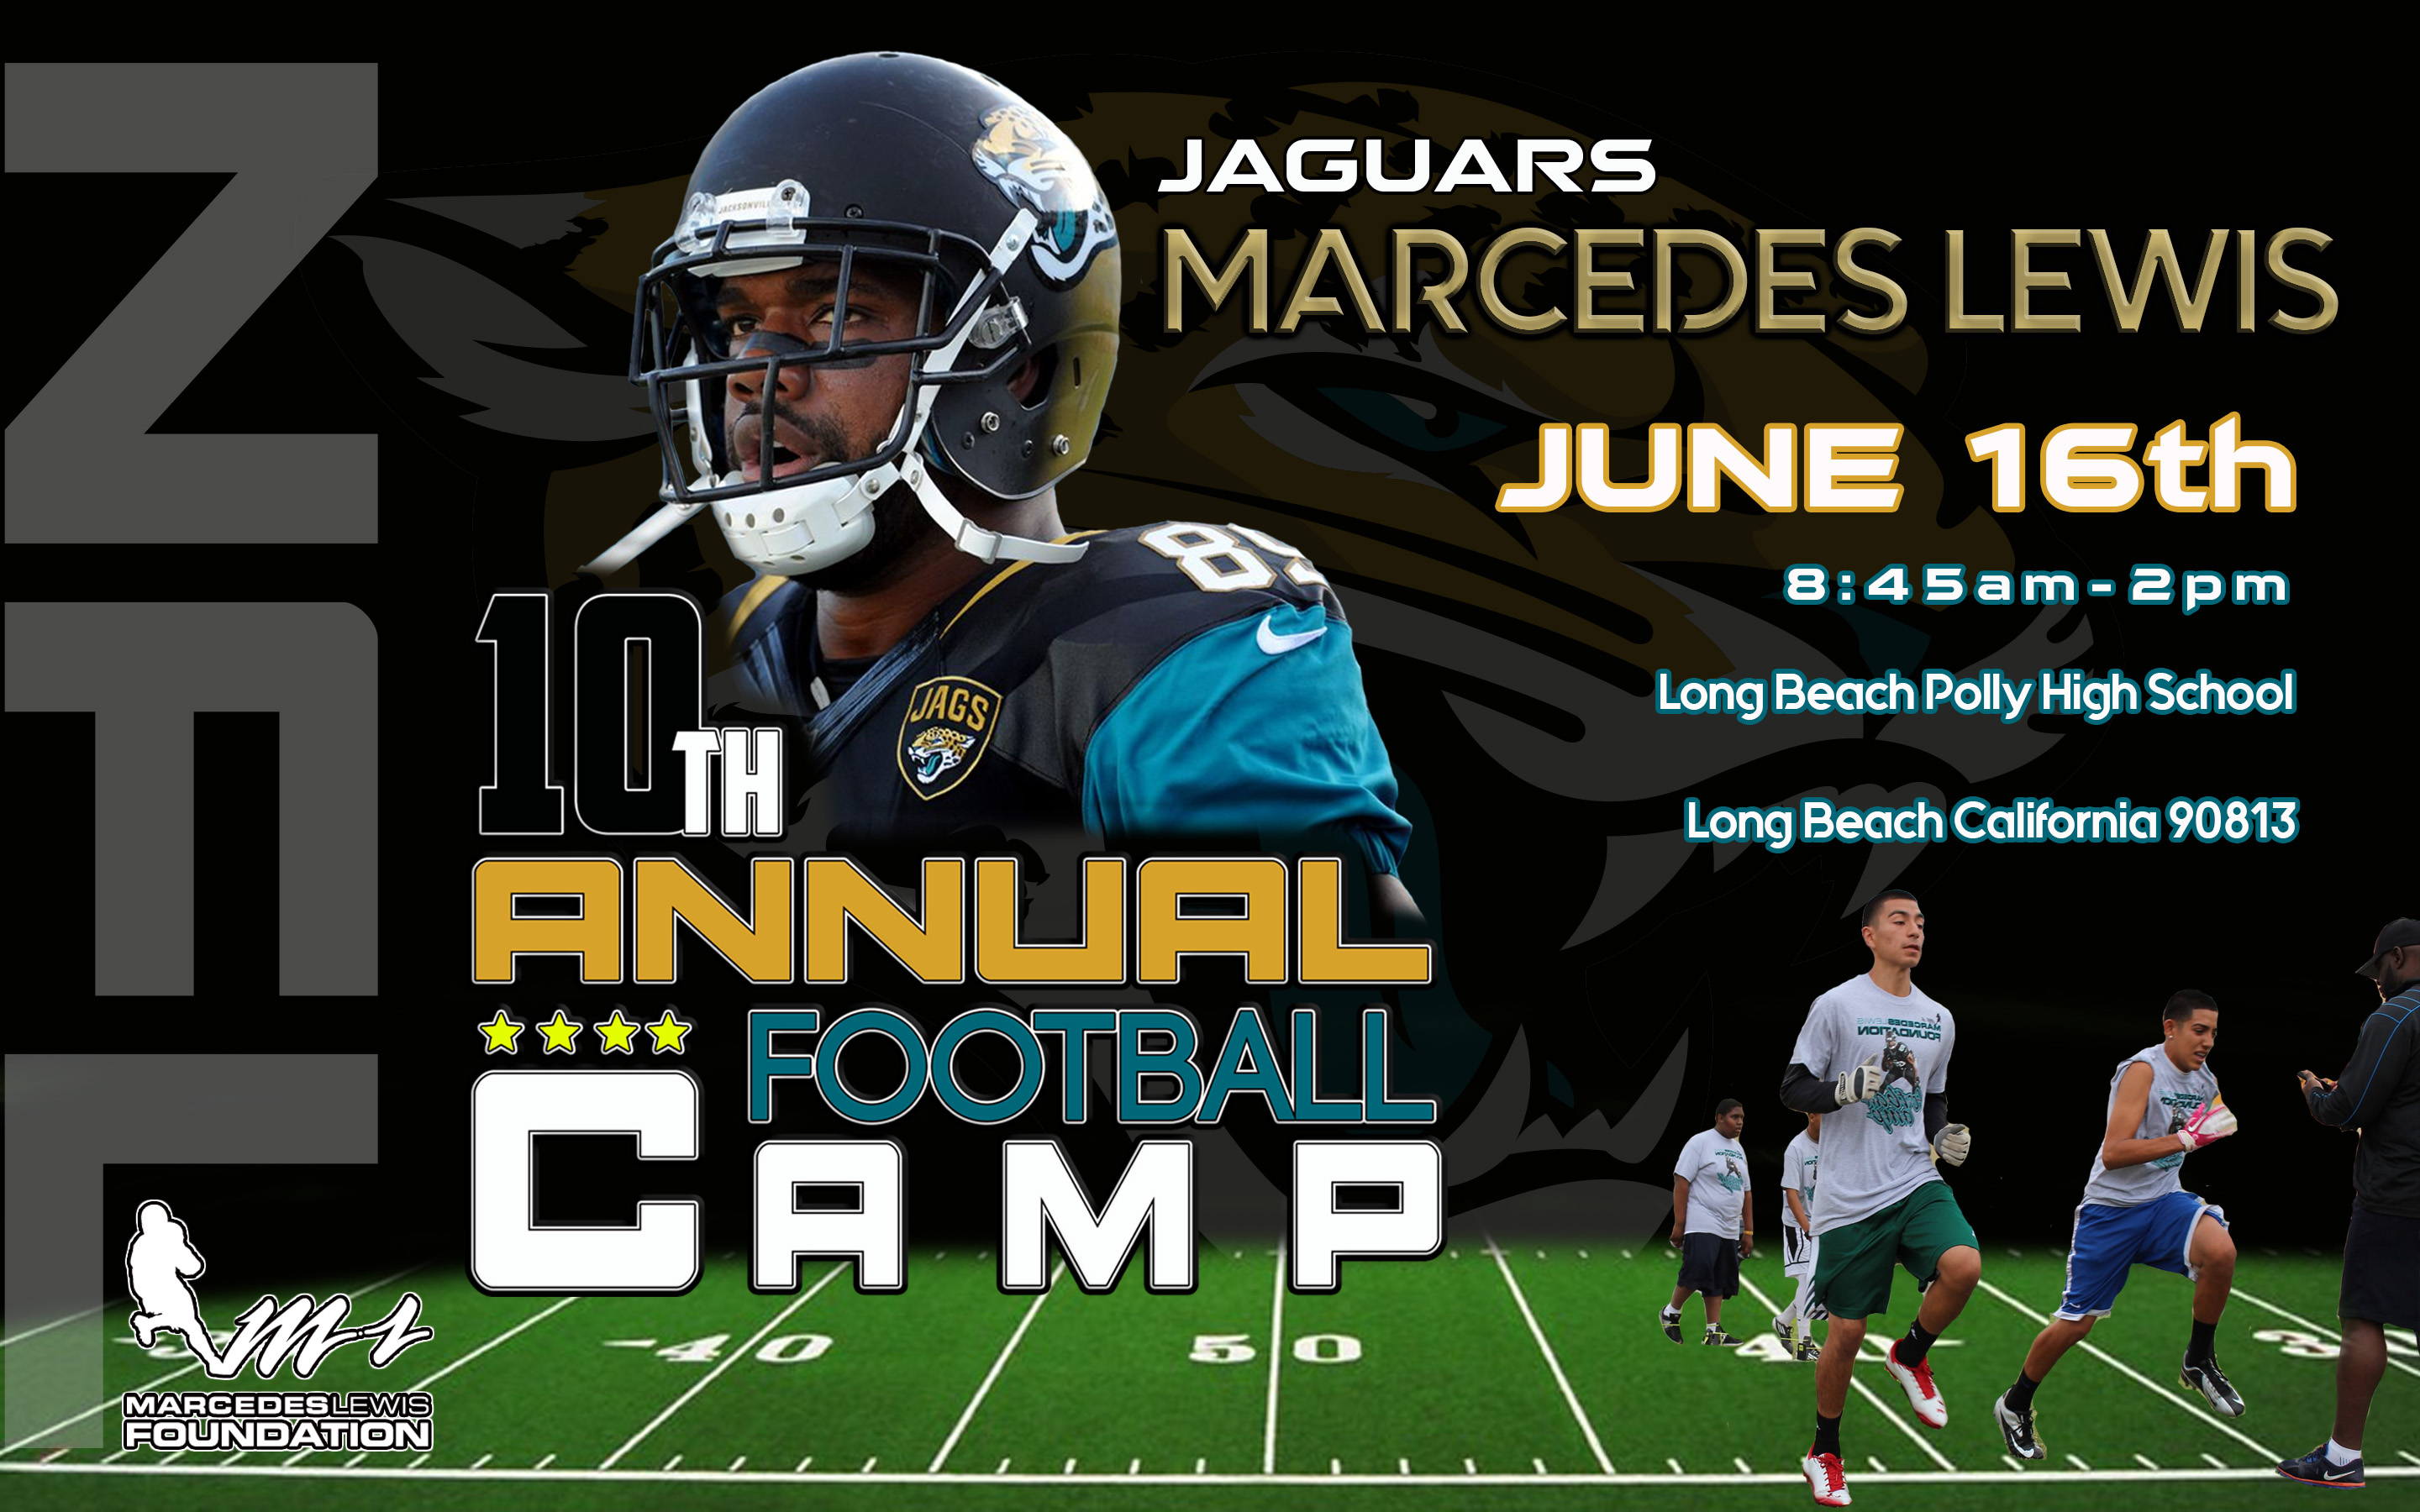 Marcedes Lewis Foundation - 10th Annual Football Camp